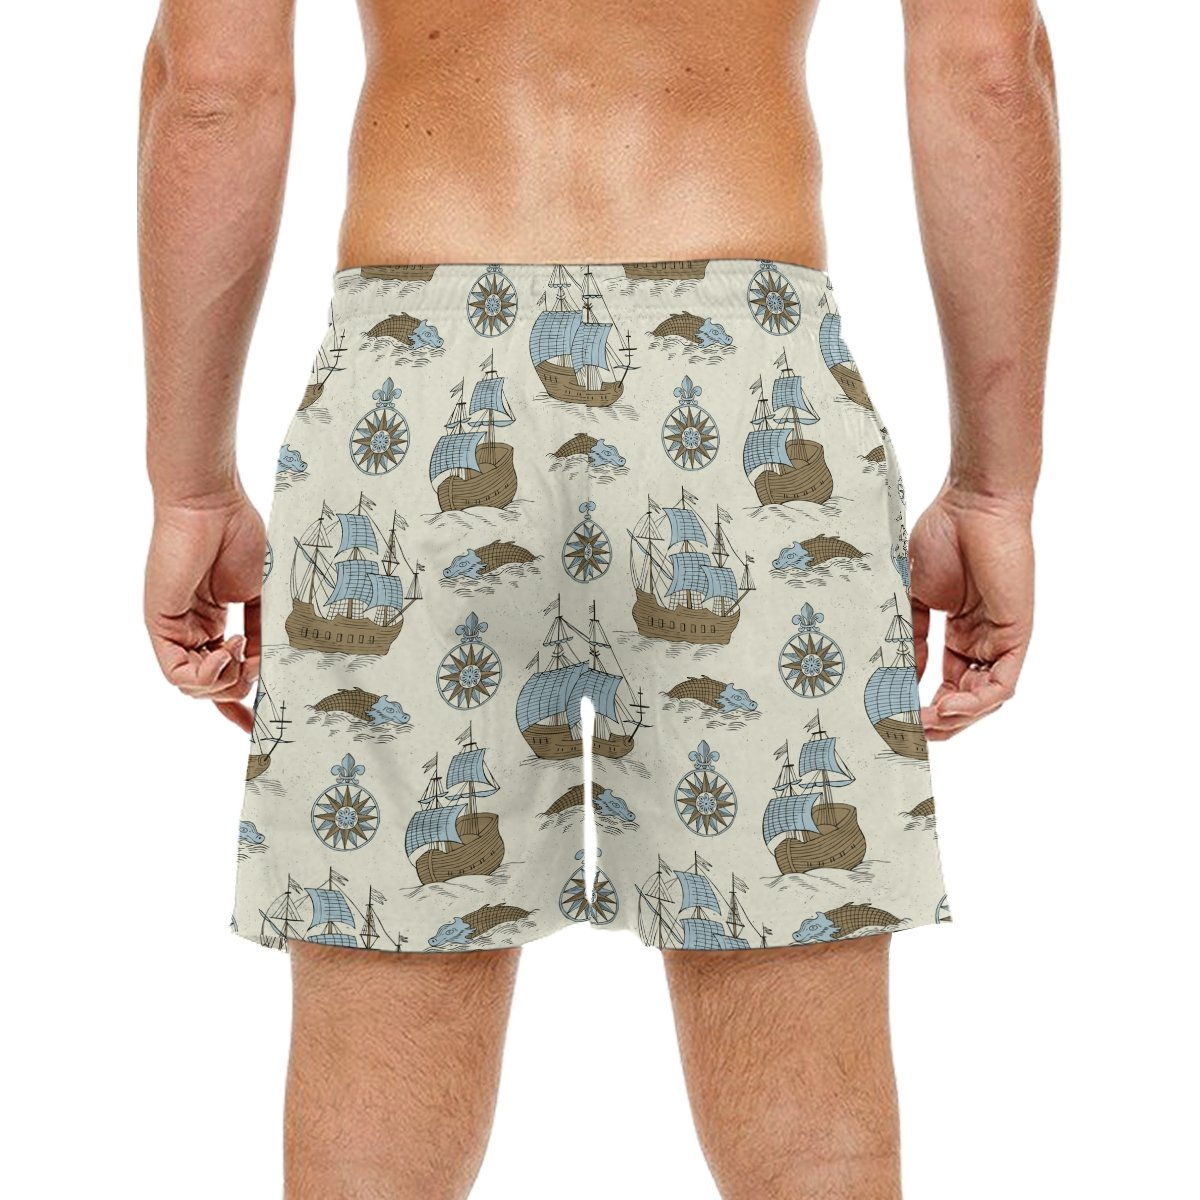 KEAKIA Mens Ship Retro Background Beach Board Shorts Quick Dry Swim Trunk